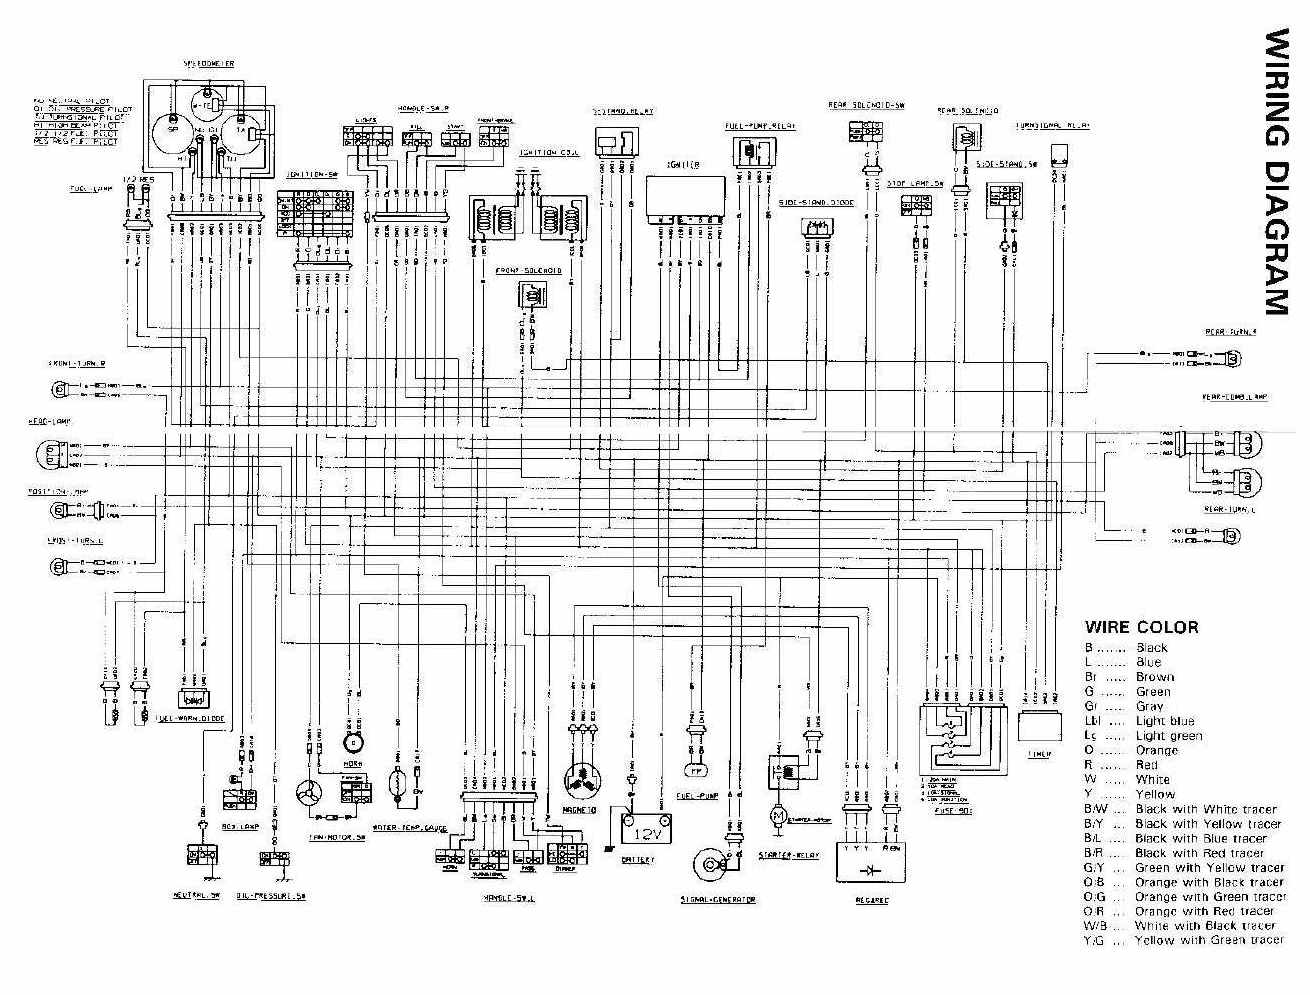 medium resolution of suzuki intruder 1400 wiring diagram 15 19 artatec automobile de u2022